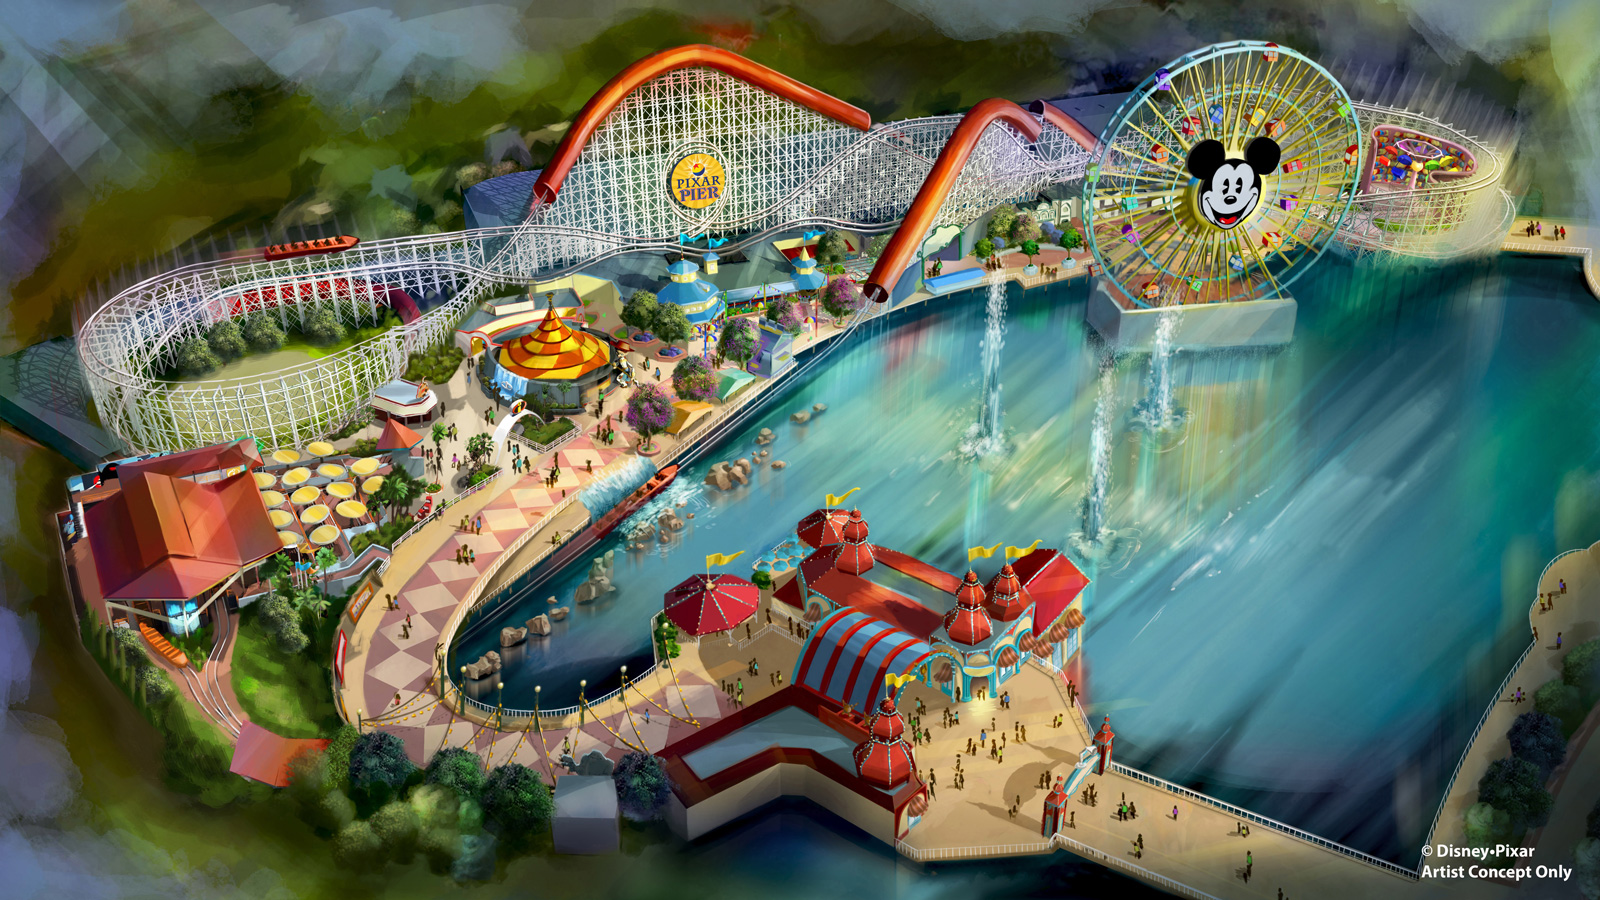 The Incredicoaster is opening at Disney's California Adventure.